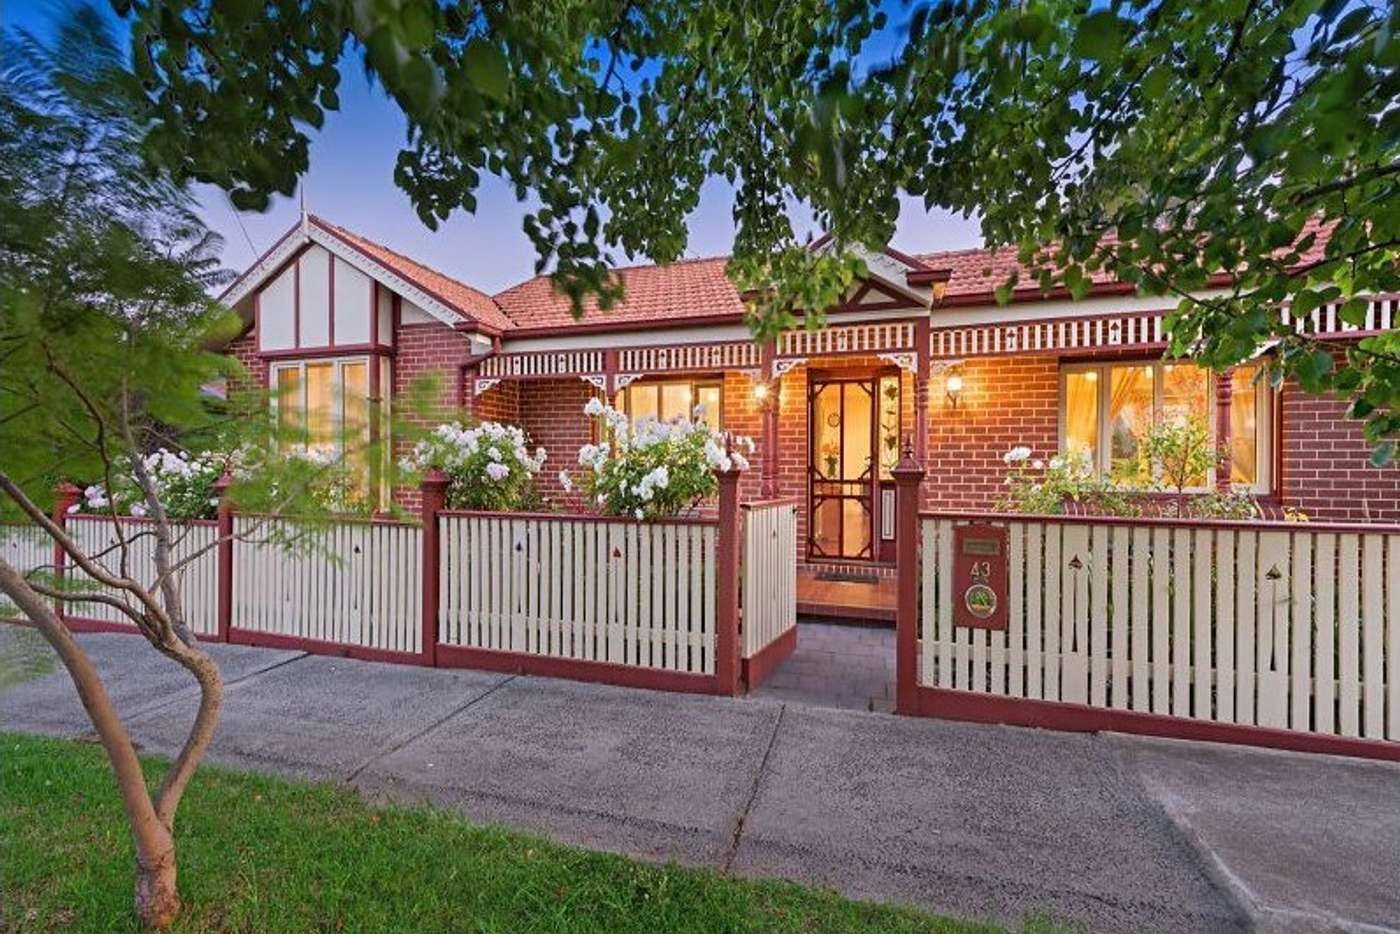 Main view of Homely house listing, 43 Wallace Street, Preston VIC 3072